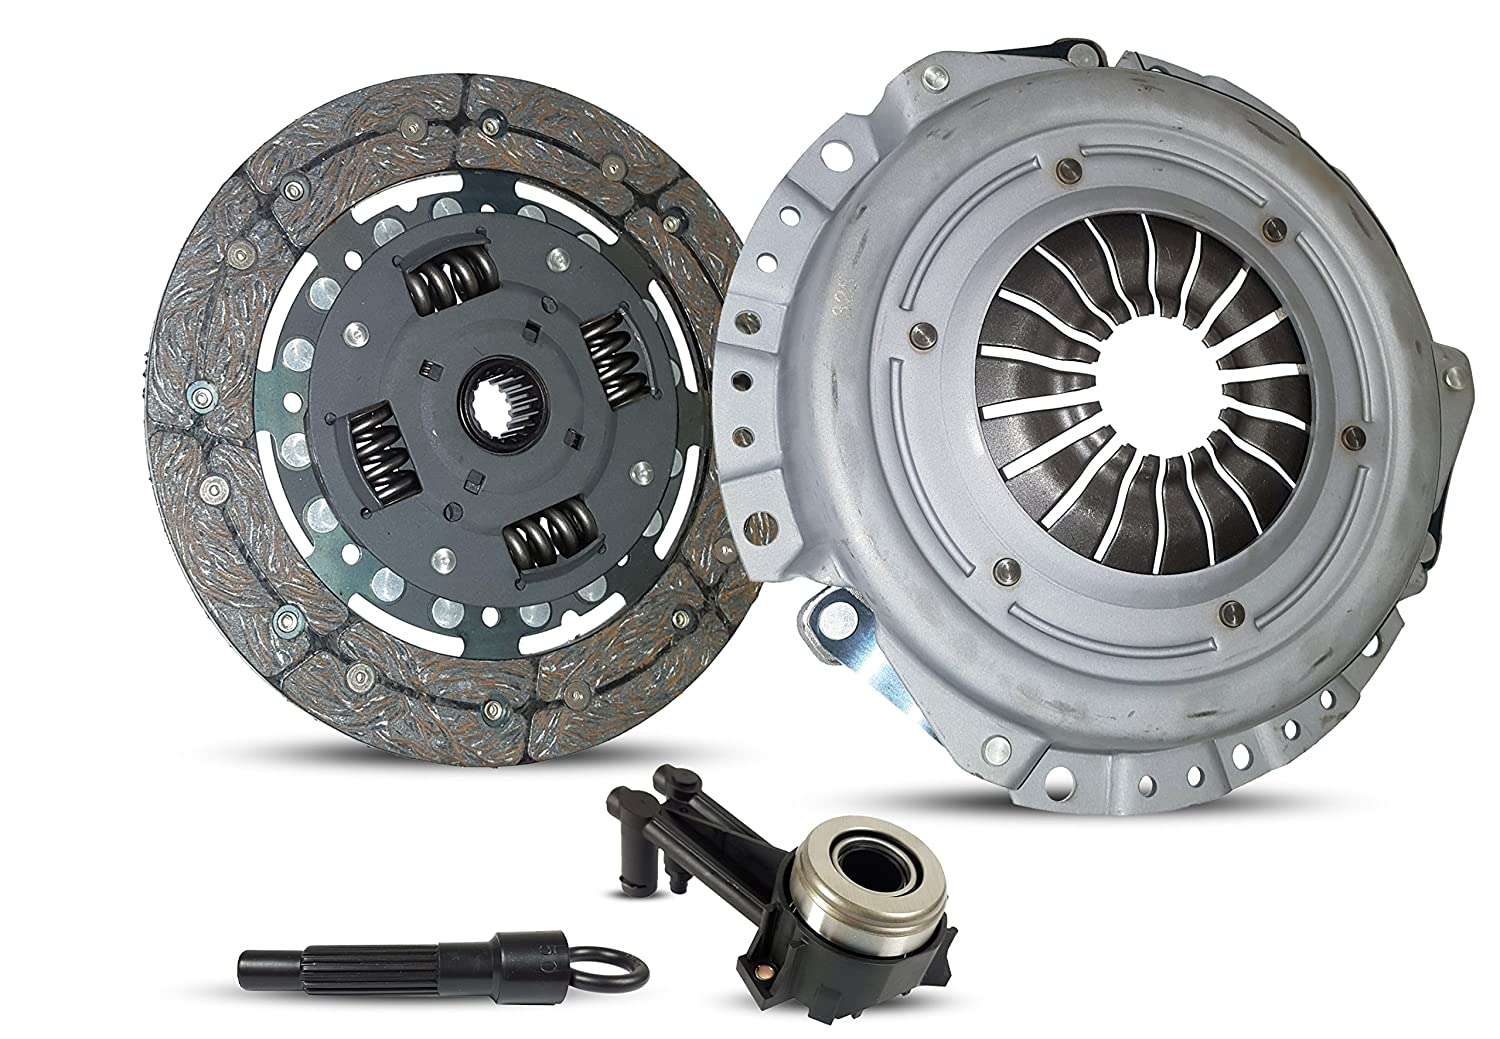 Amazon.com: New HD Clutch Slave Kit Works With Ford Fiesta 1.6L L4 SOHC 2001-2010: Automotive